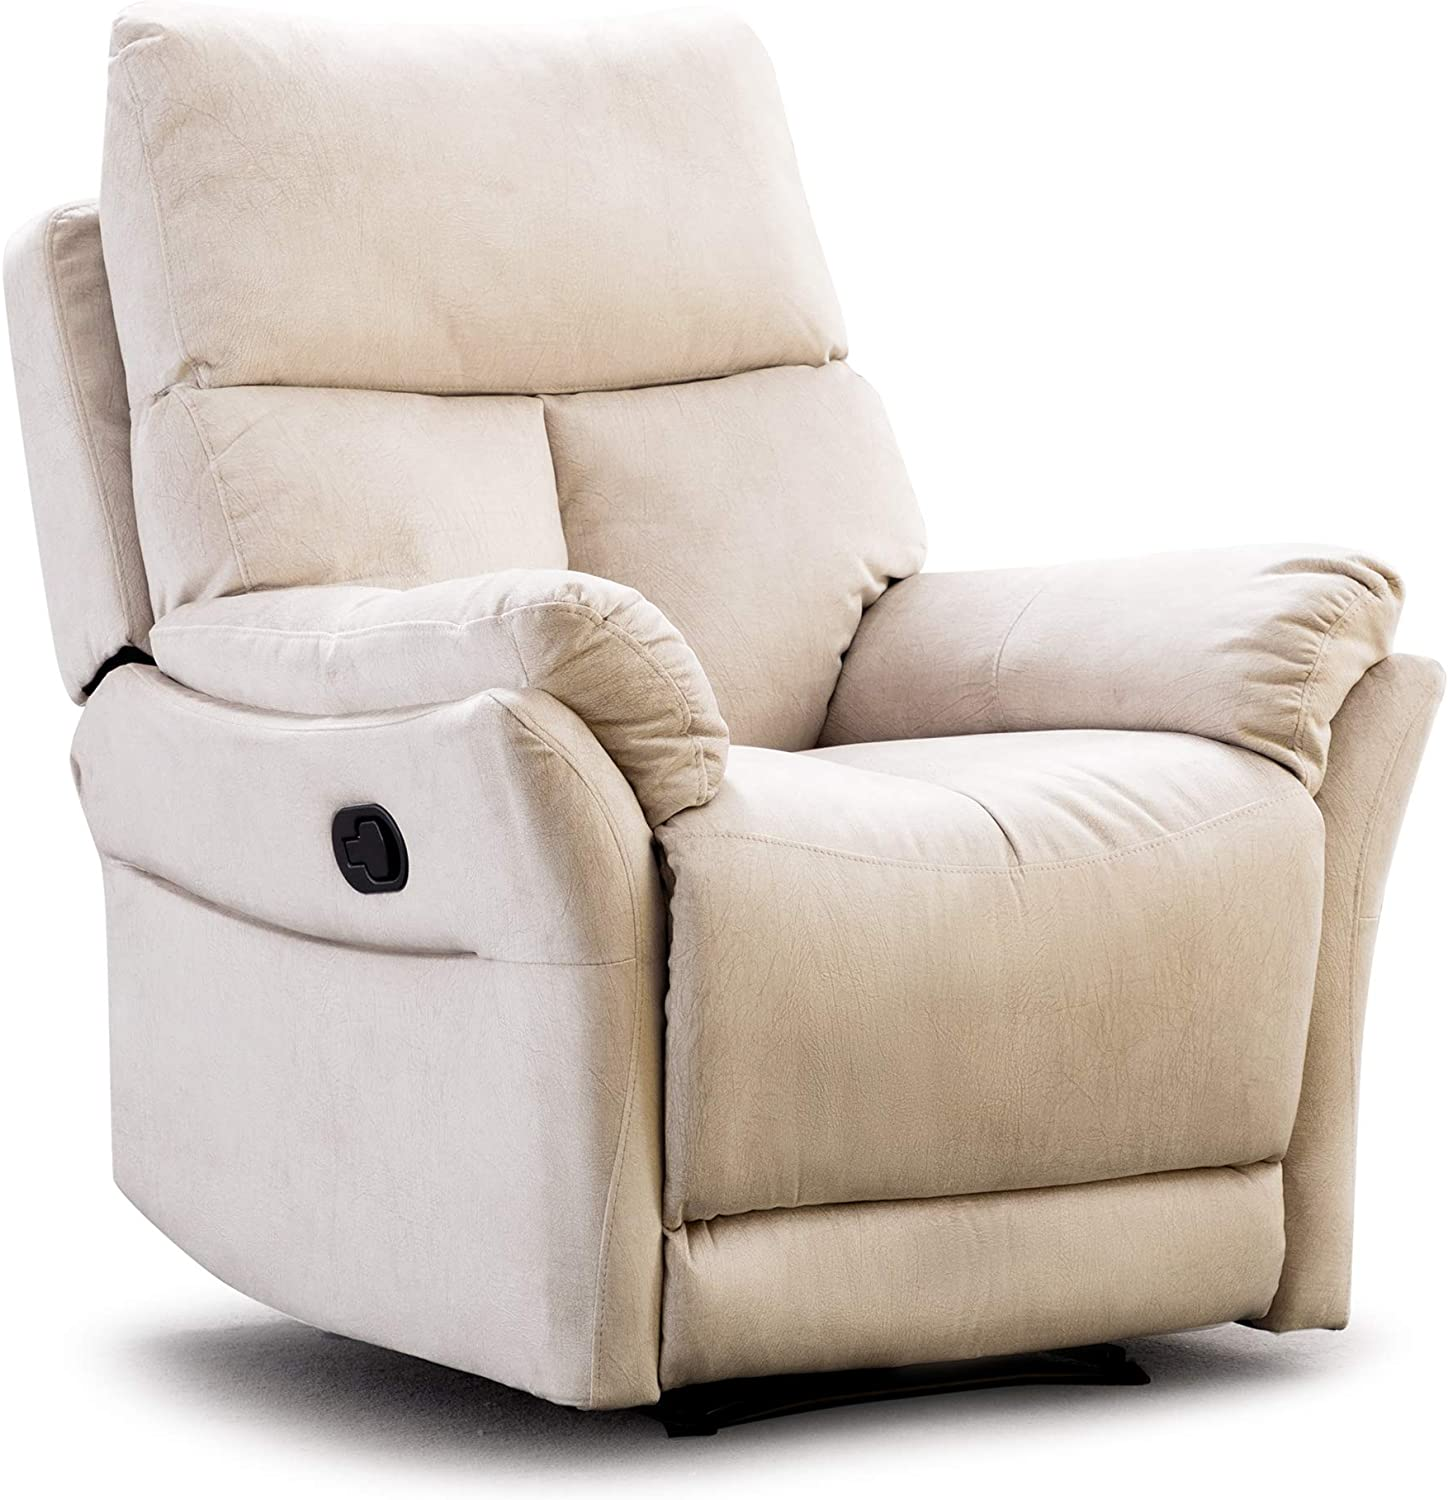 Merax Recliner Chair Lazy Sofa, Manual Ergonomic Design with Overstuffed Armrest, Footrest and Back for Living Room, Beige